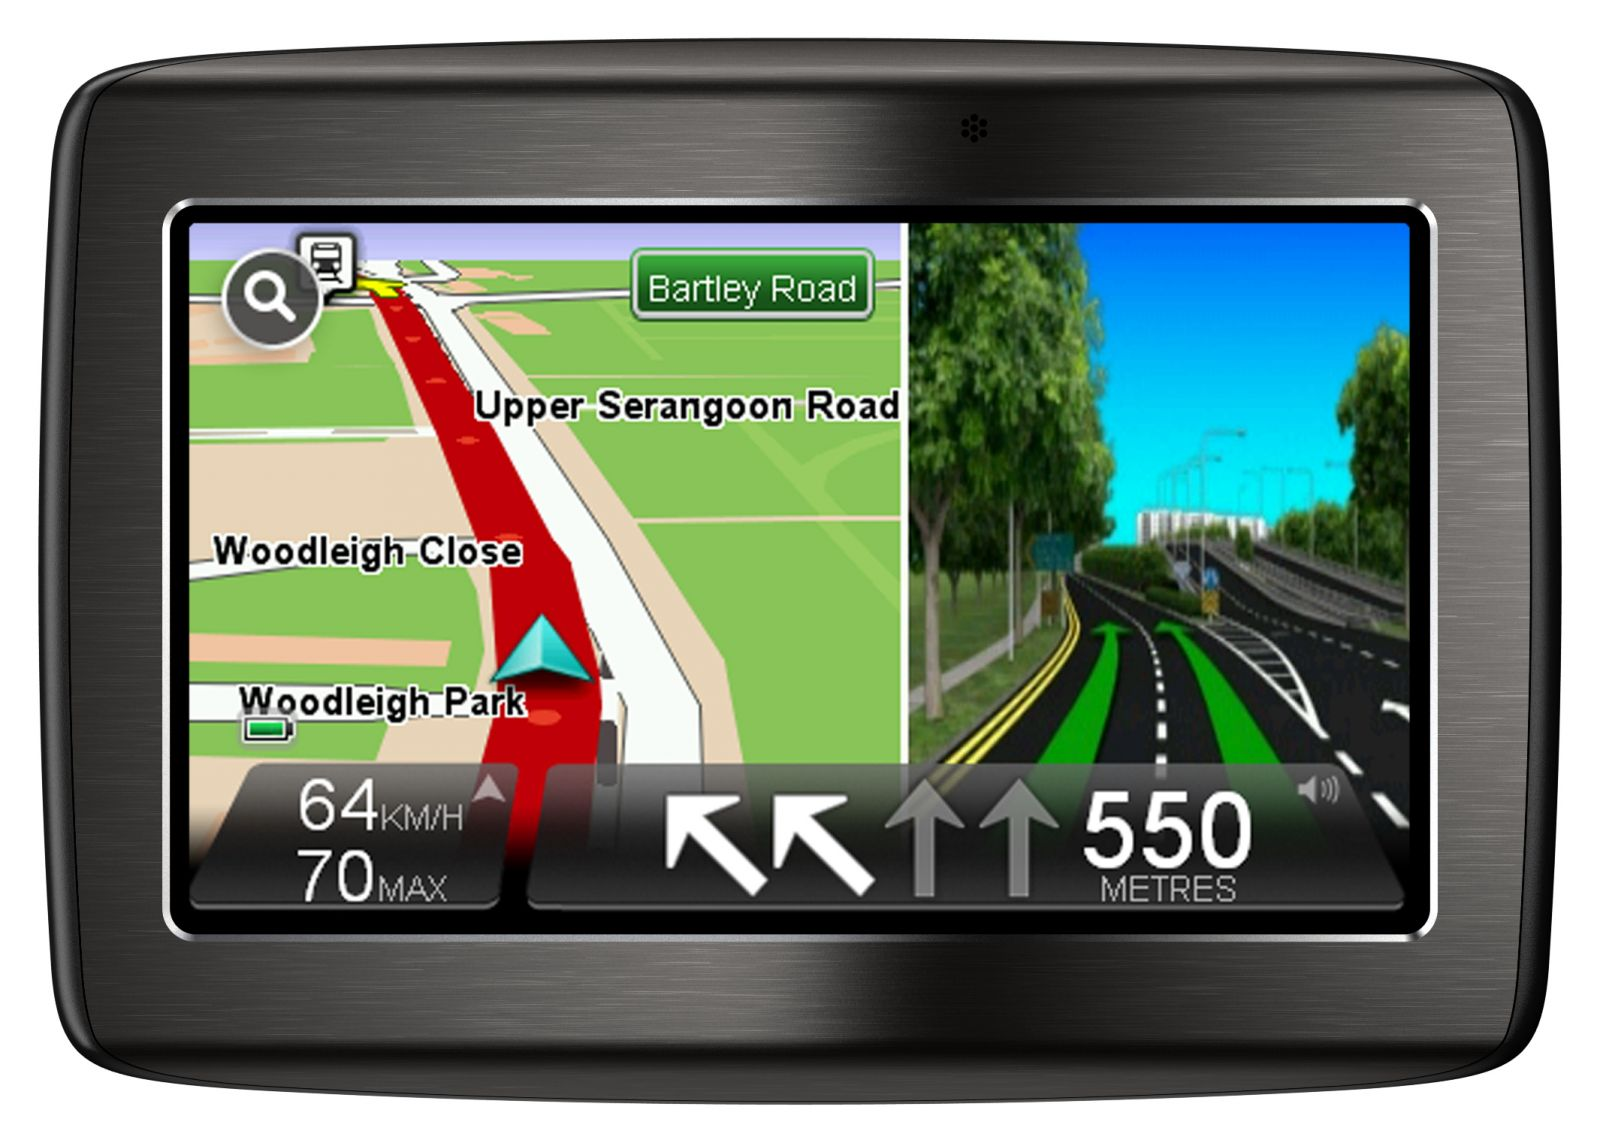 gps devices can be controlled with your voice tomtom260speak